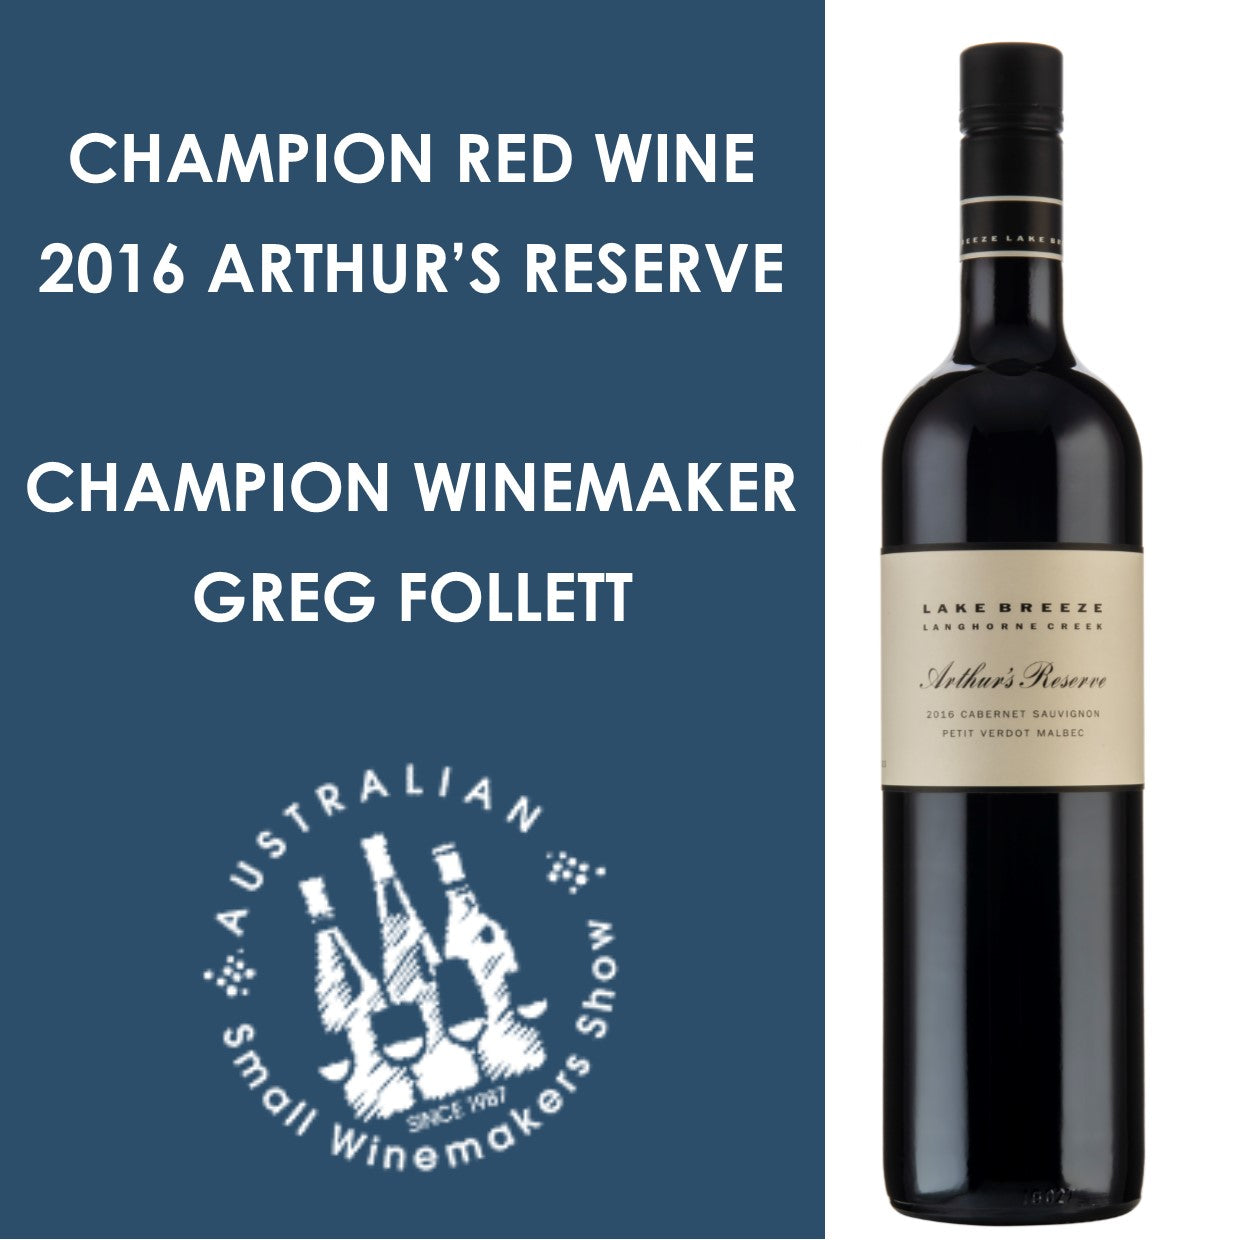 champion red wine of show!